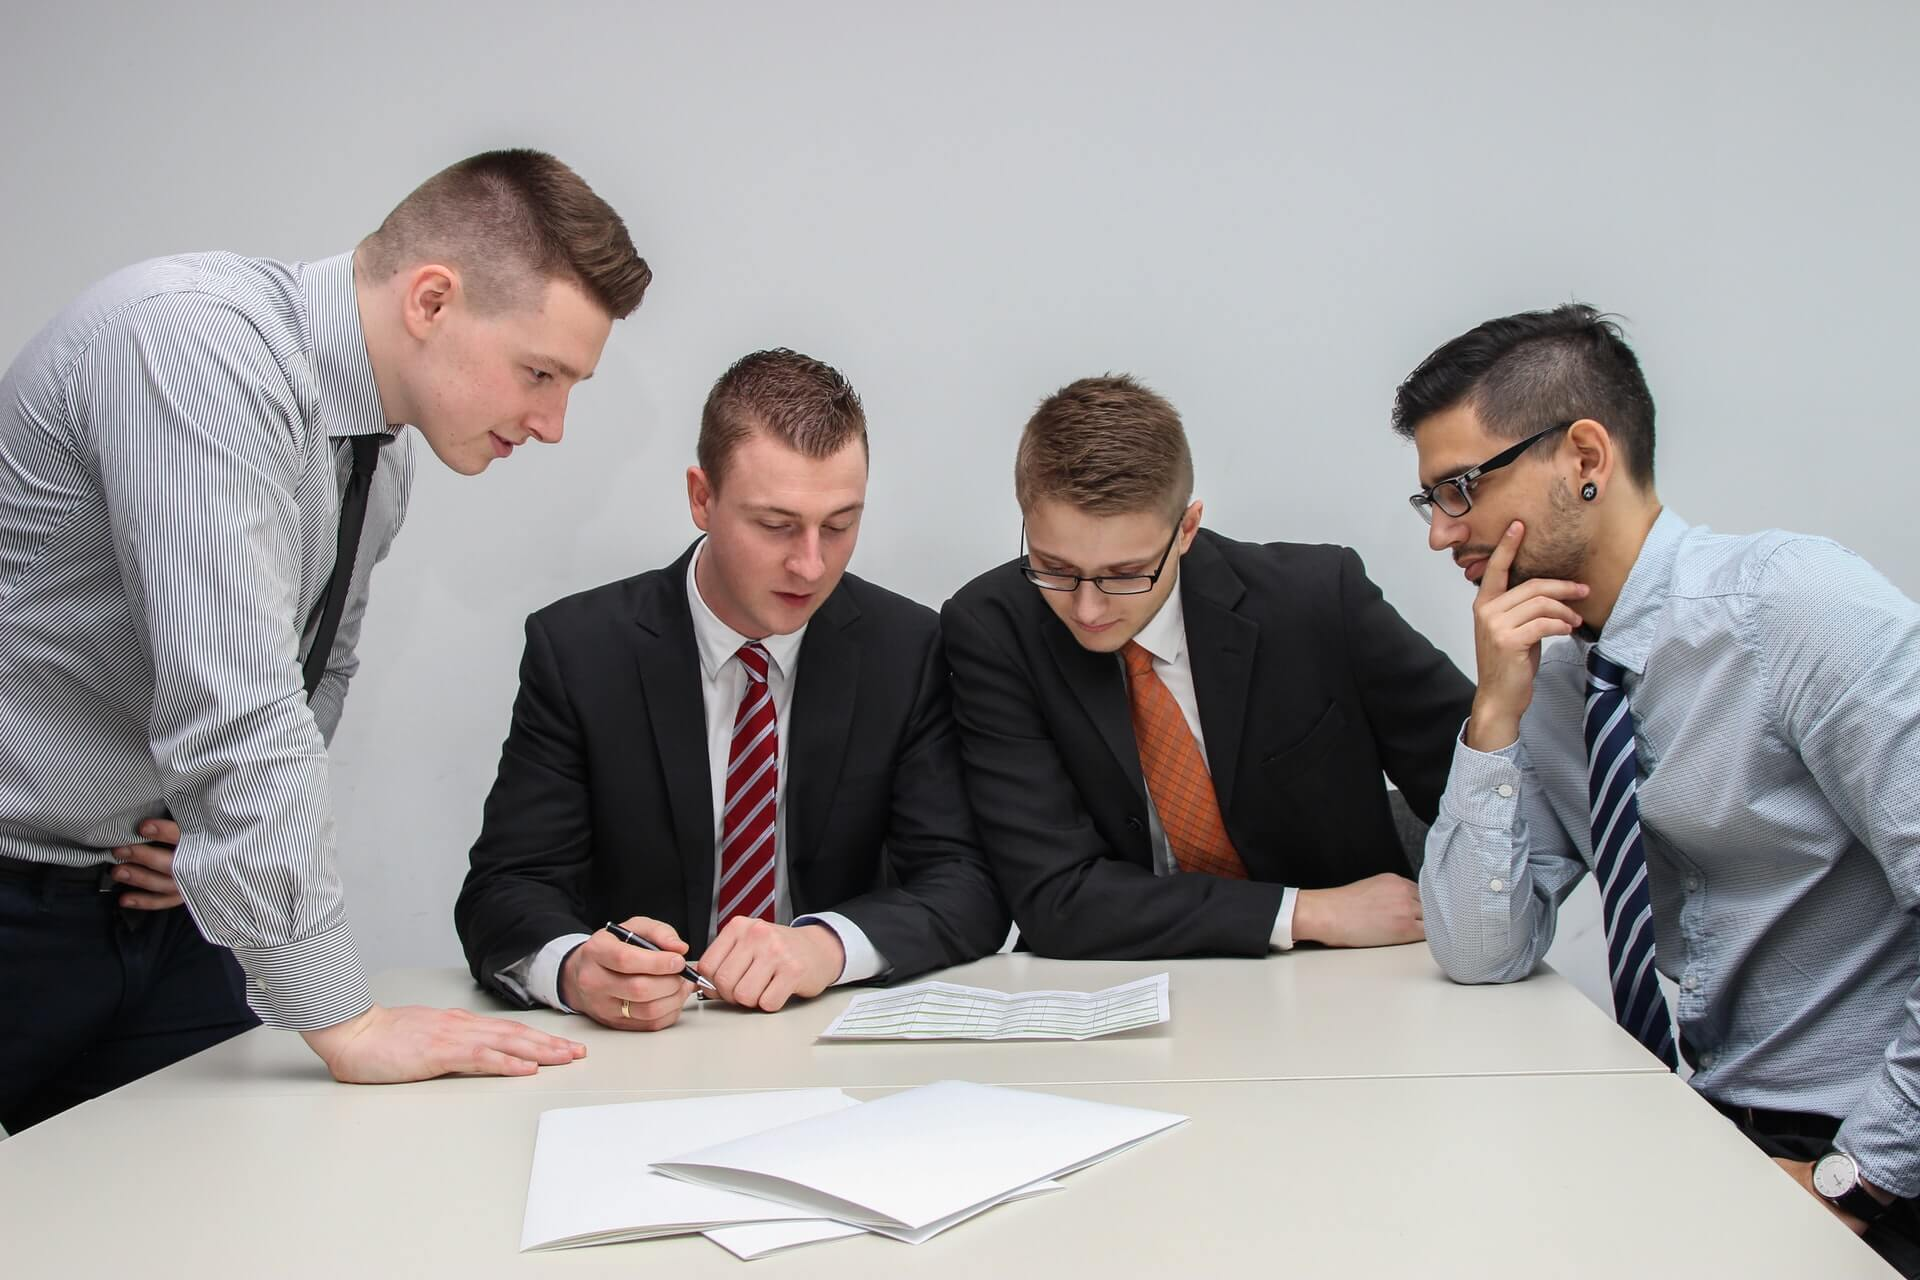 four men looking at a document